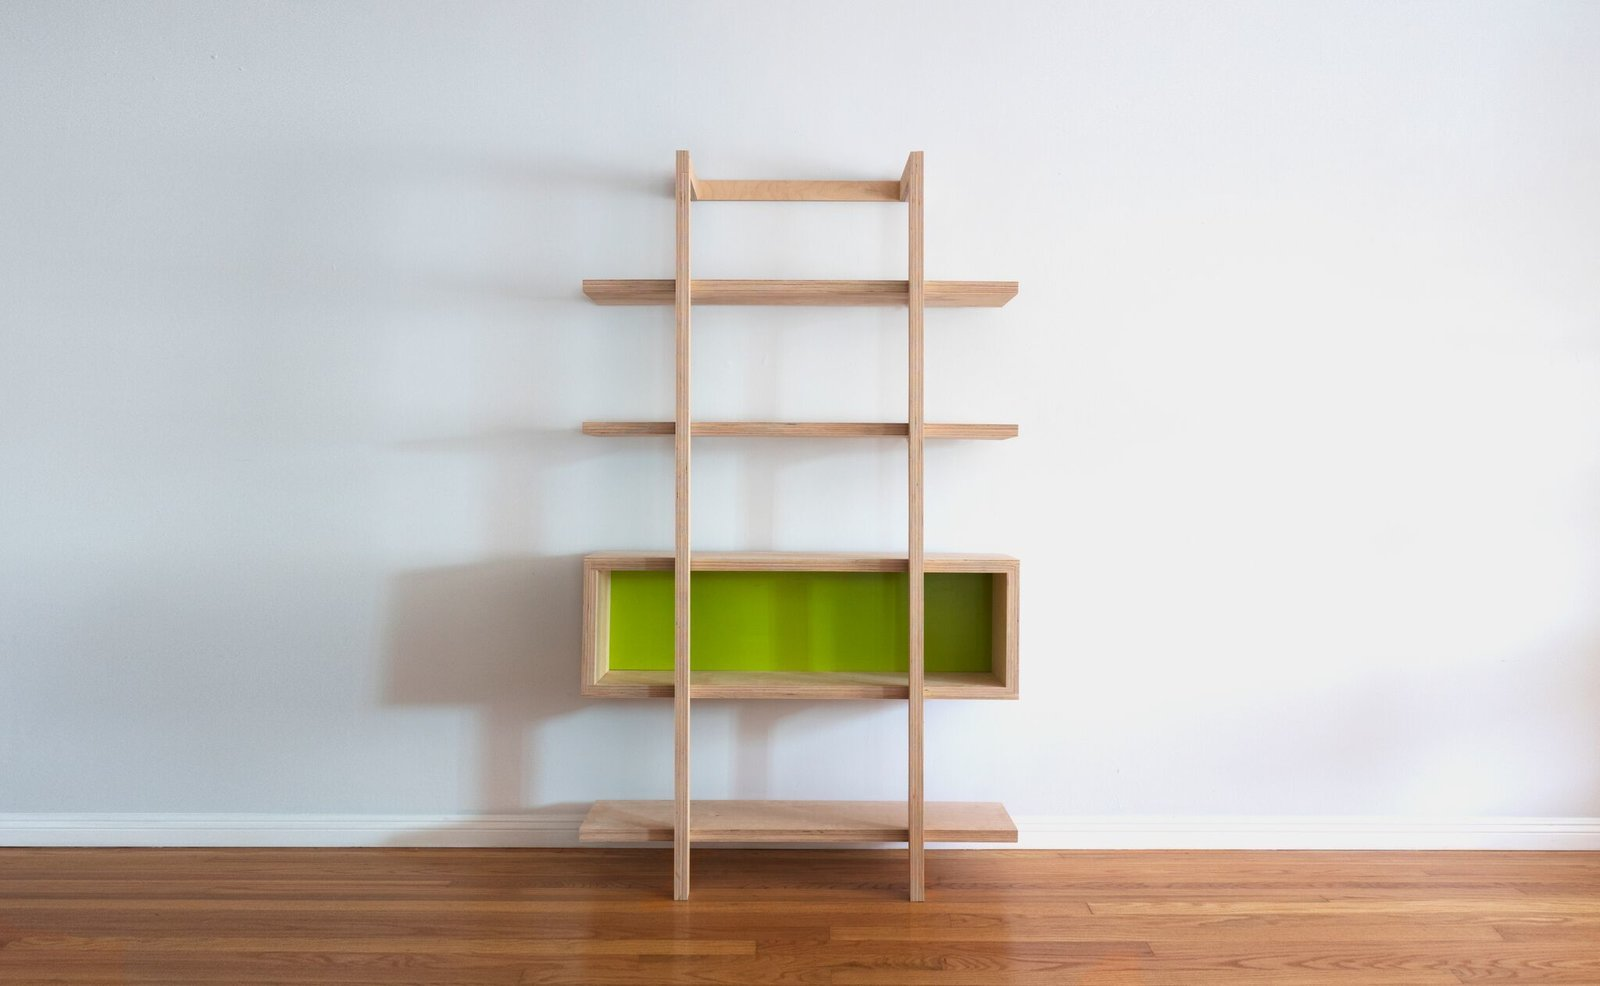 diy shelving system | Dwell Made Presents: DIY Back-Off Shelving System - Dwell